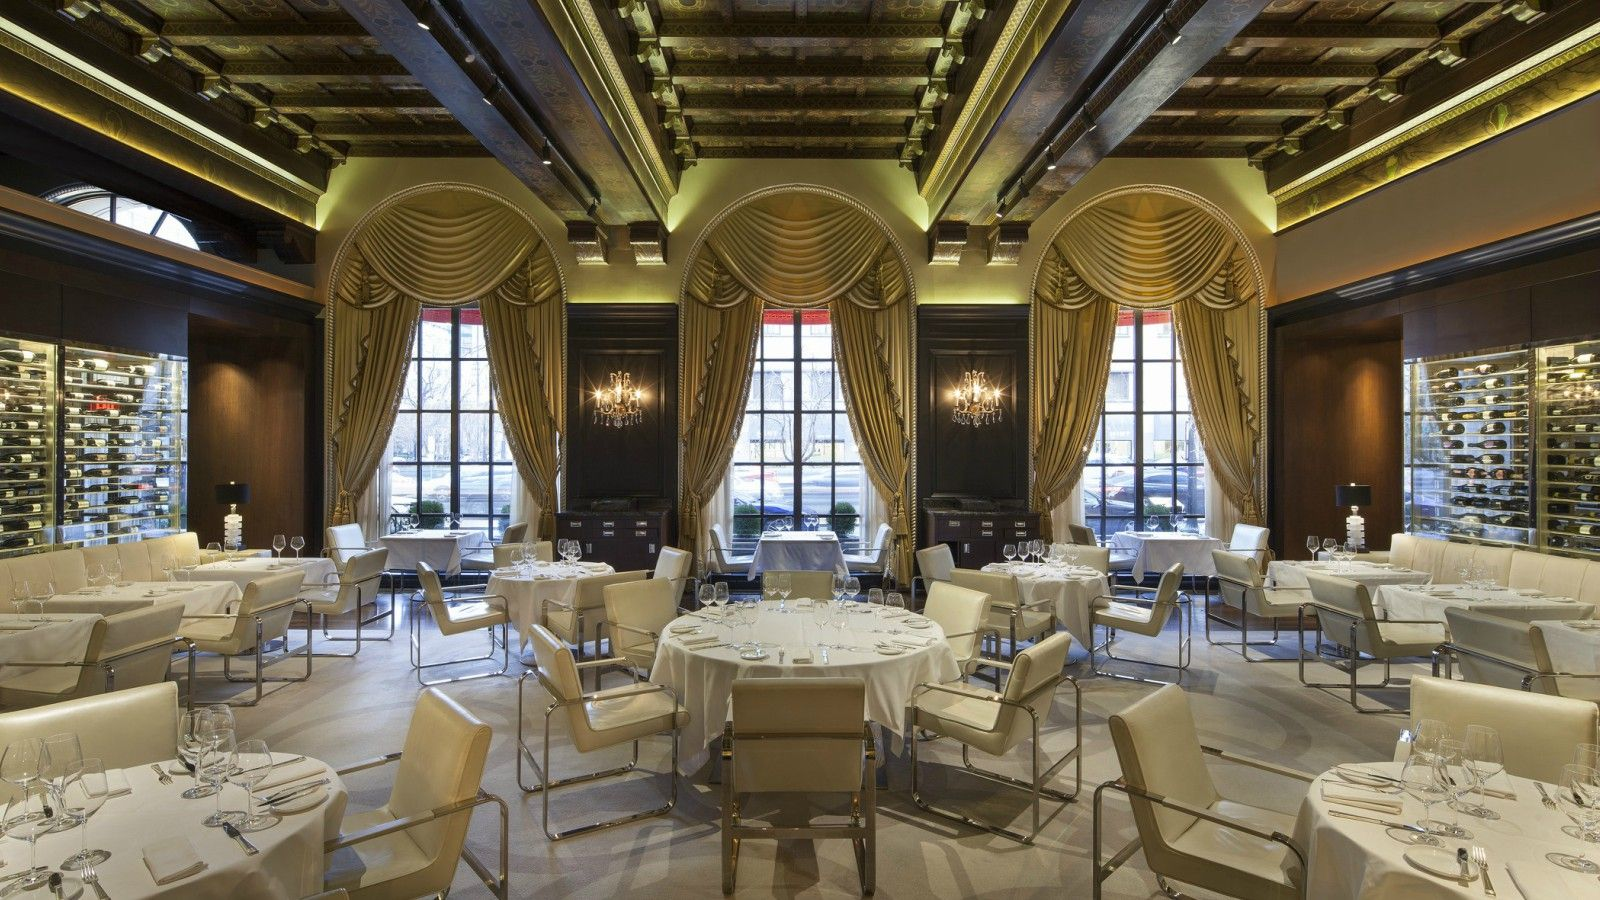 The St. Regis Washington, D.C. - Restaurant